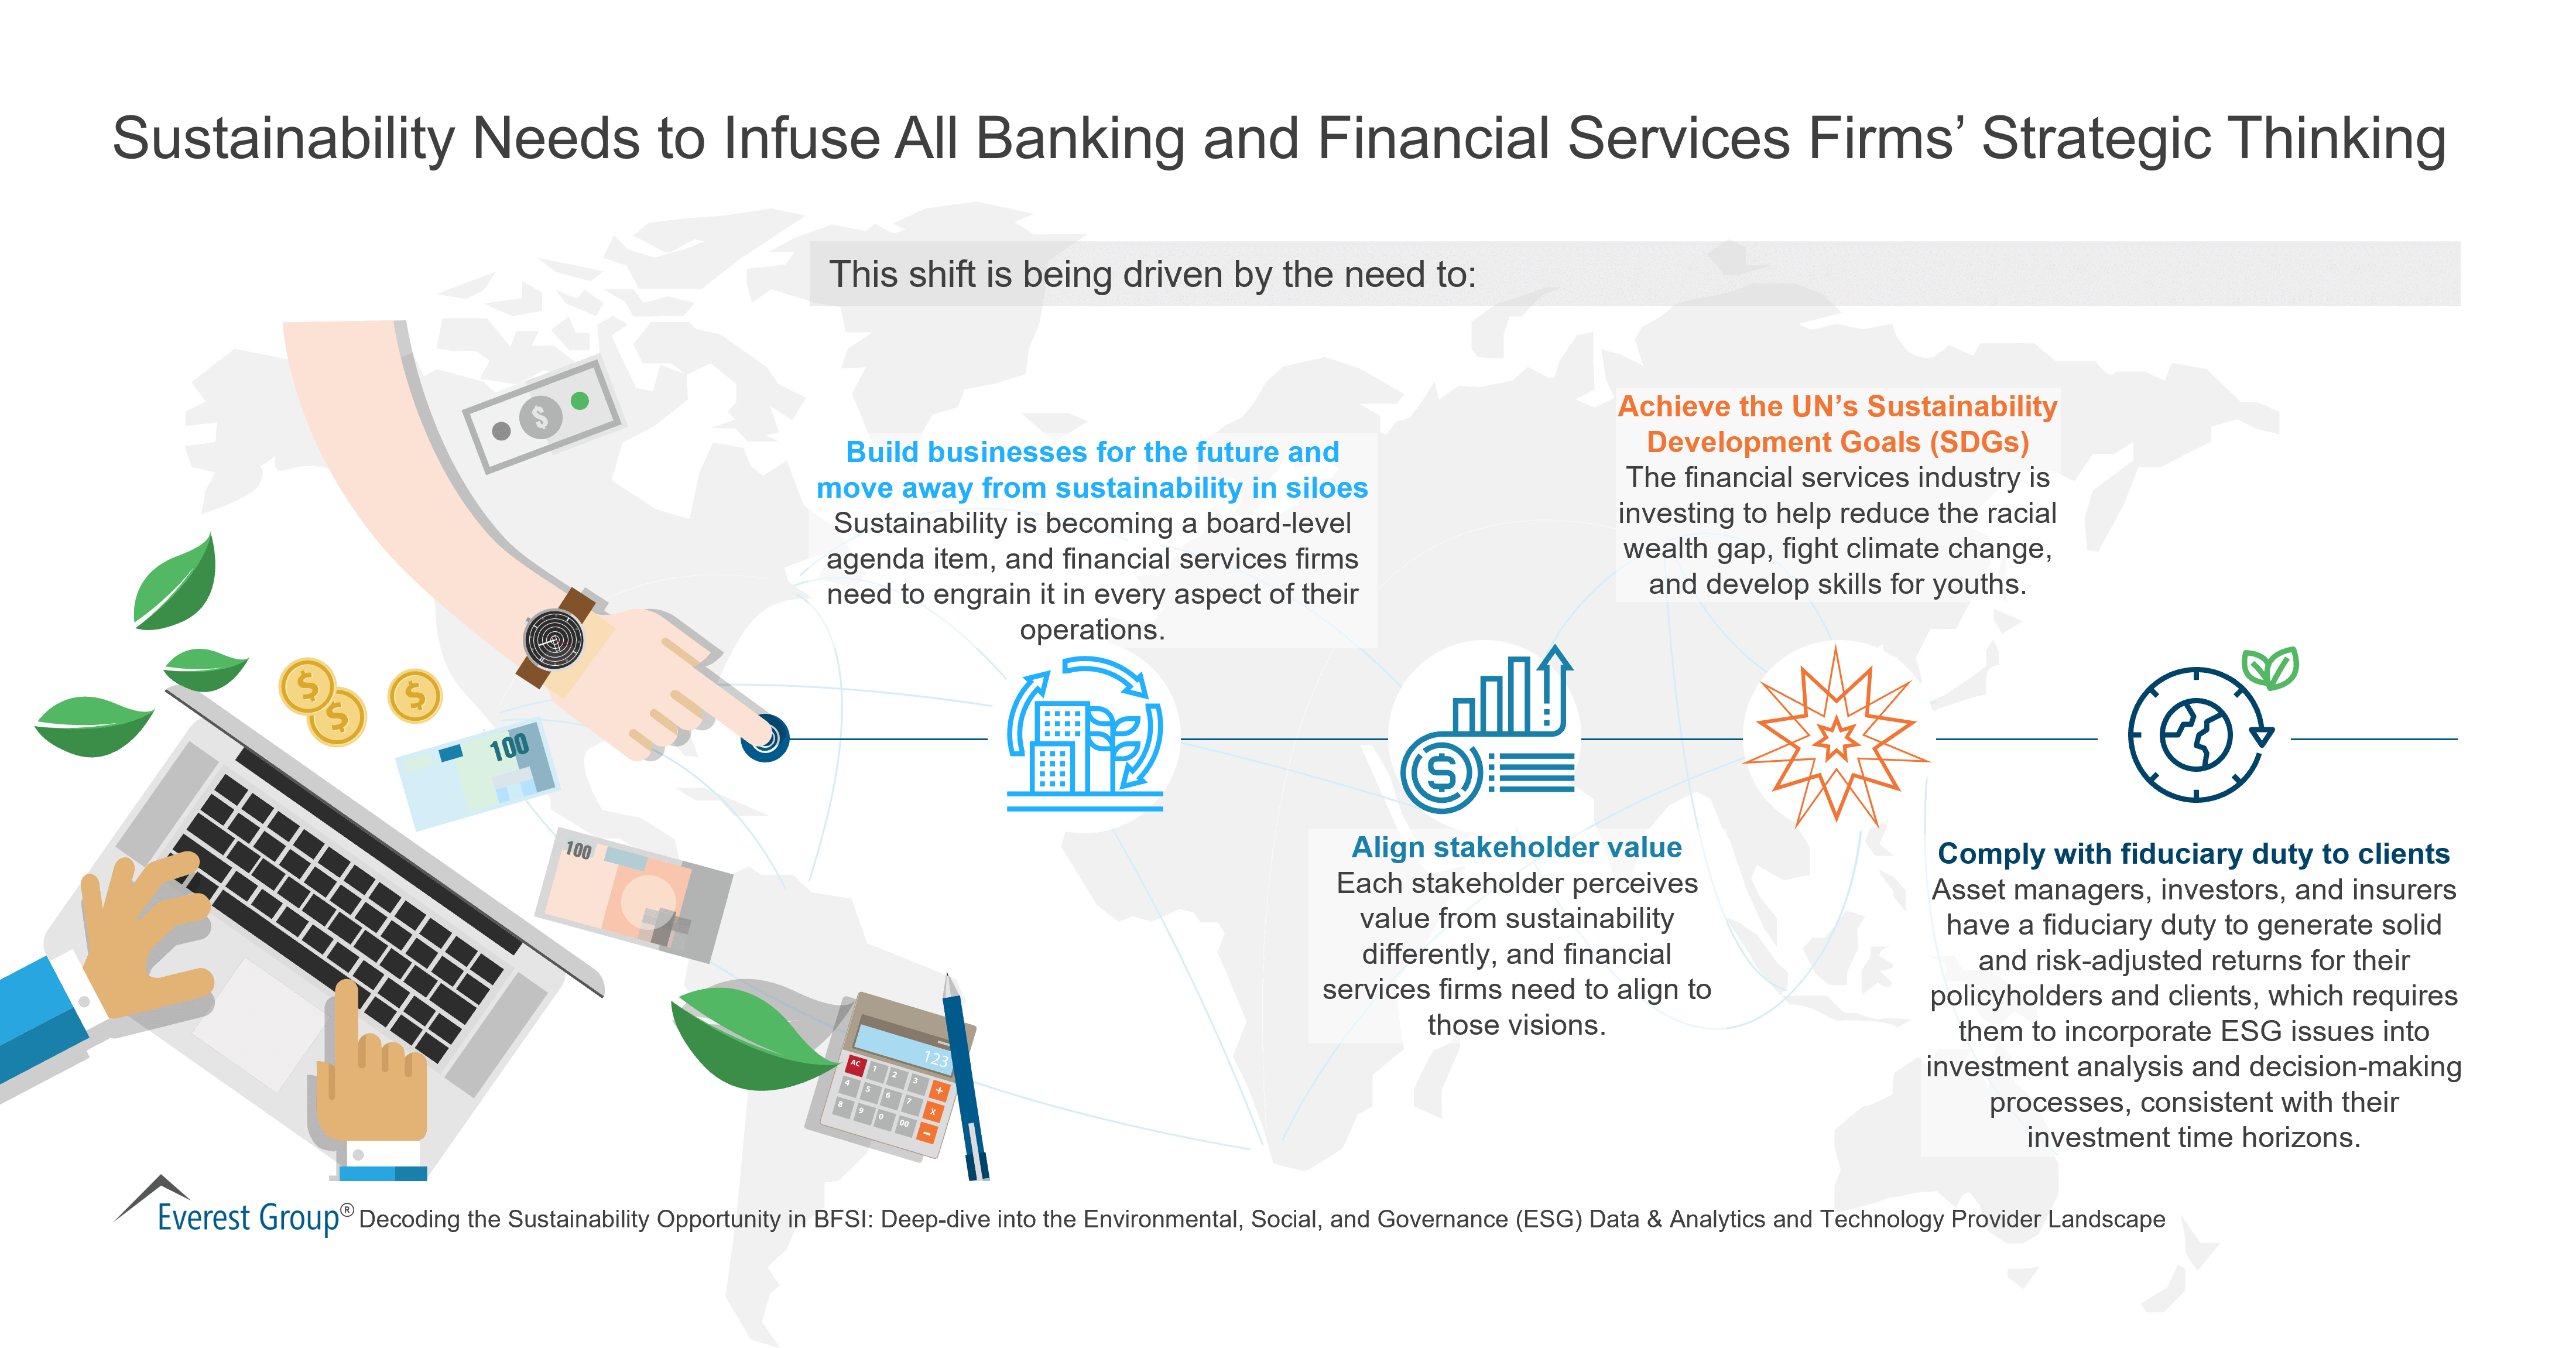 Sustainability Needs to Infuse All Banking and Financial Services Firms' Strategic Thinking